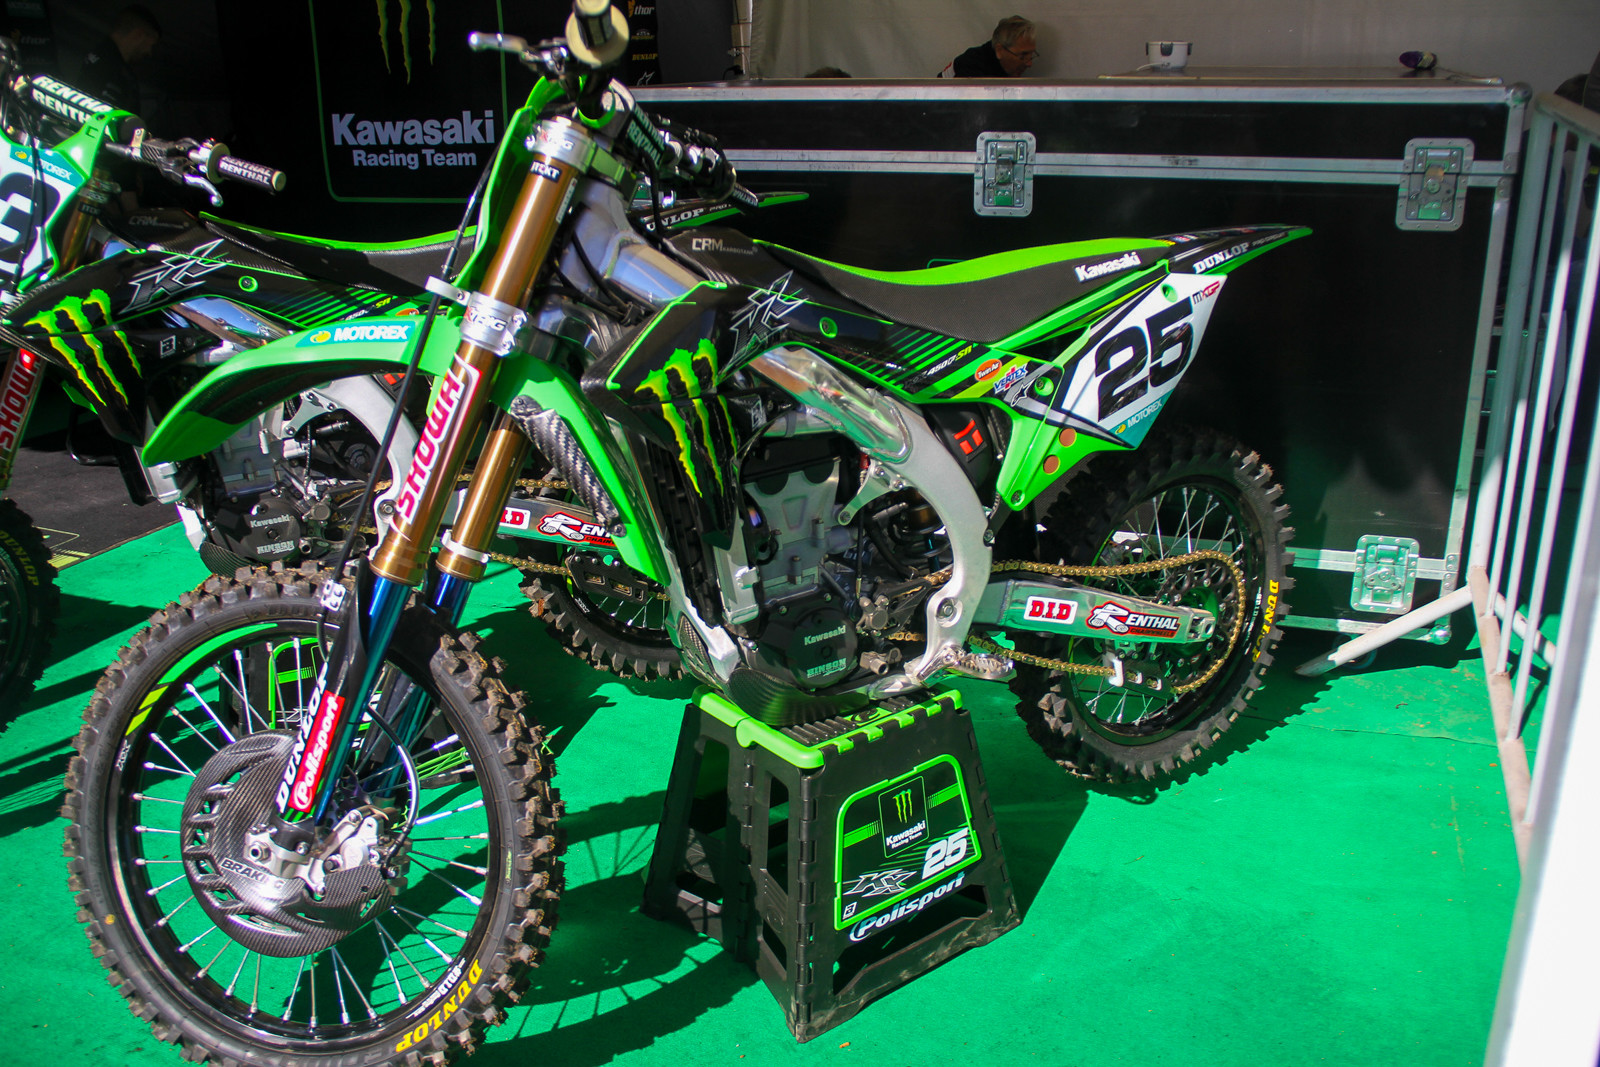 The KRT Kawasaki KX450F-SRs have some serious trickness aboard.